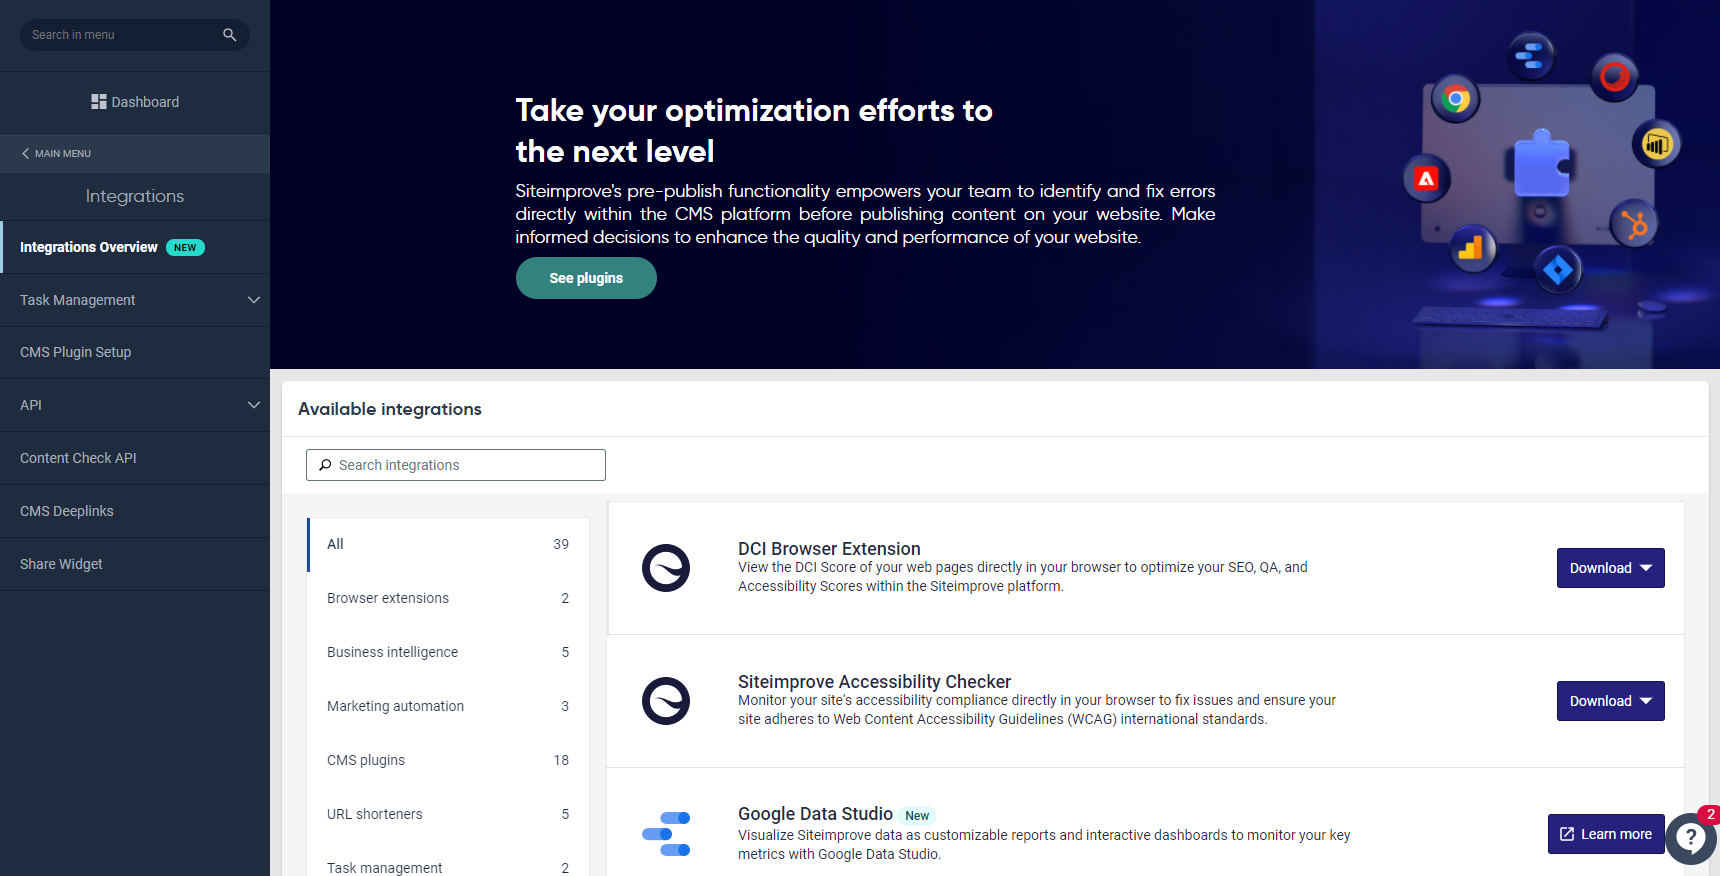 Screenshot of the new Integrations Overview page.